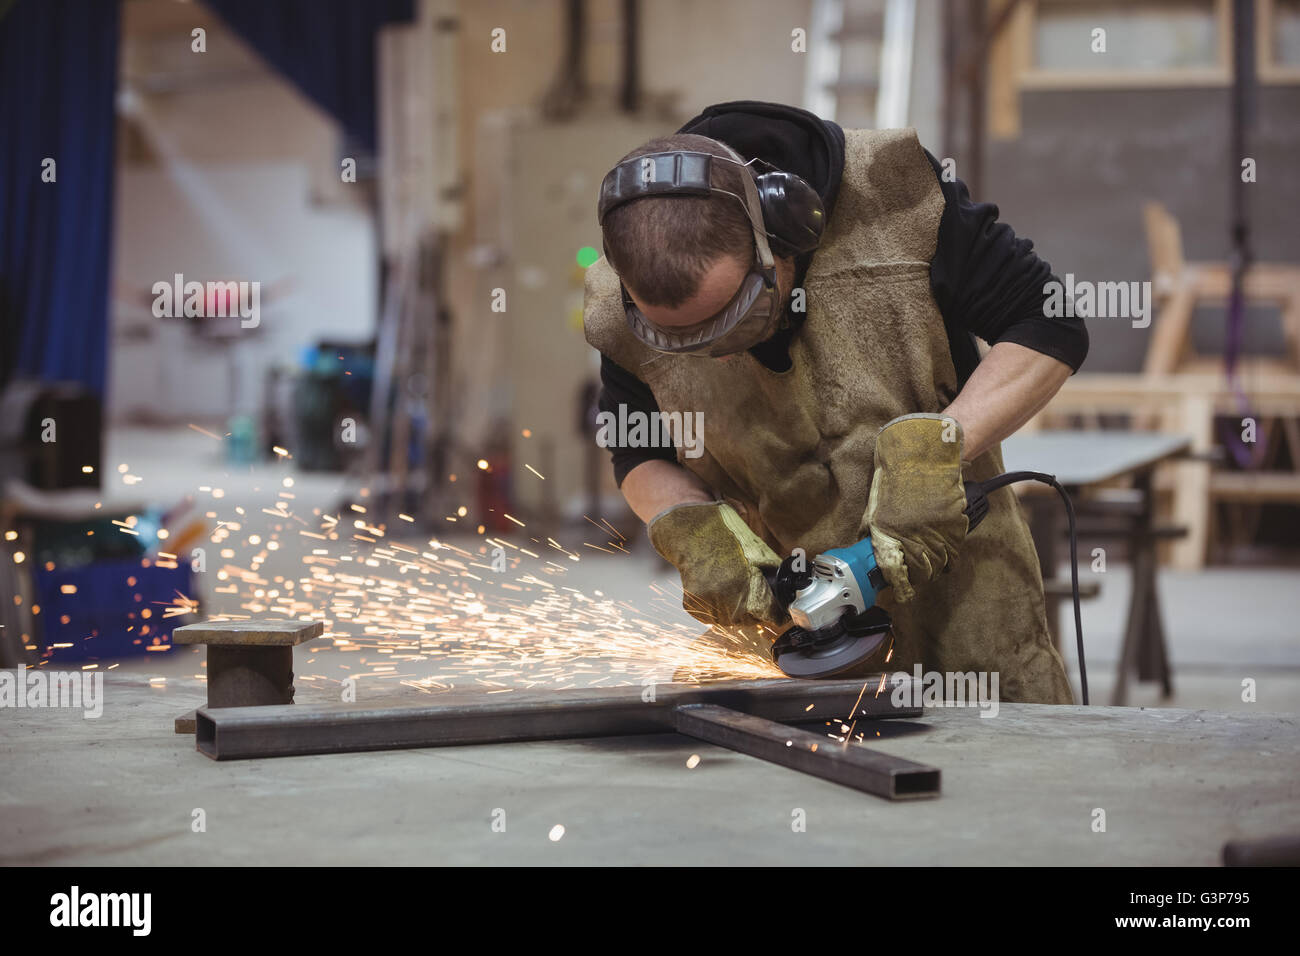 Worker using an angle grinder - Stock Image